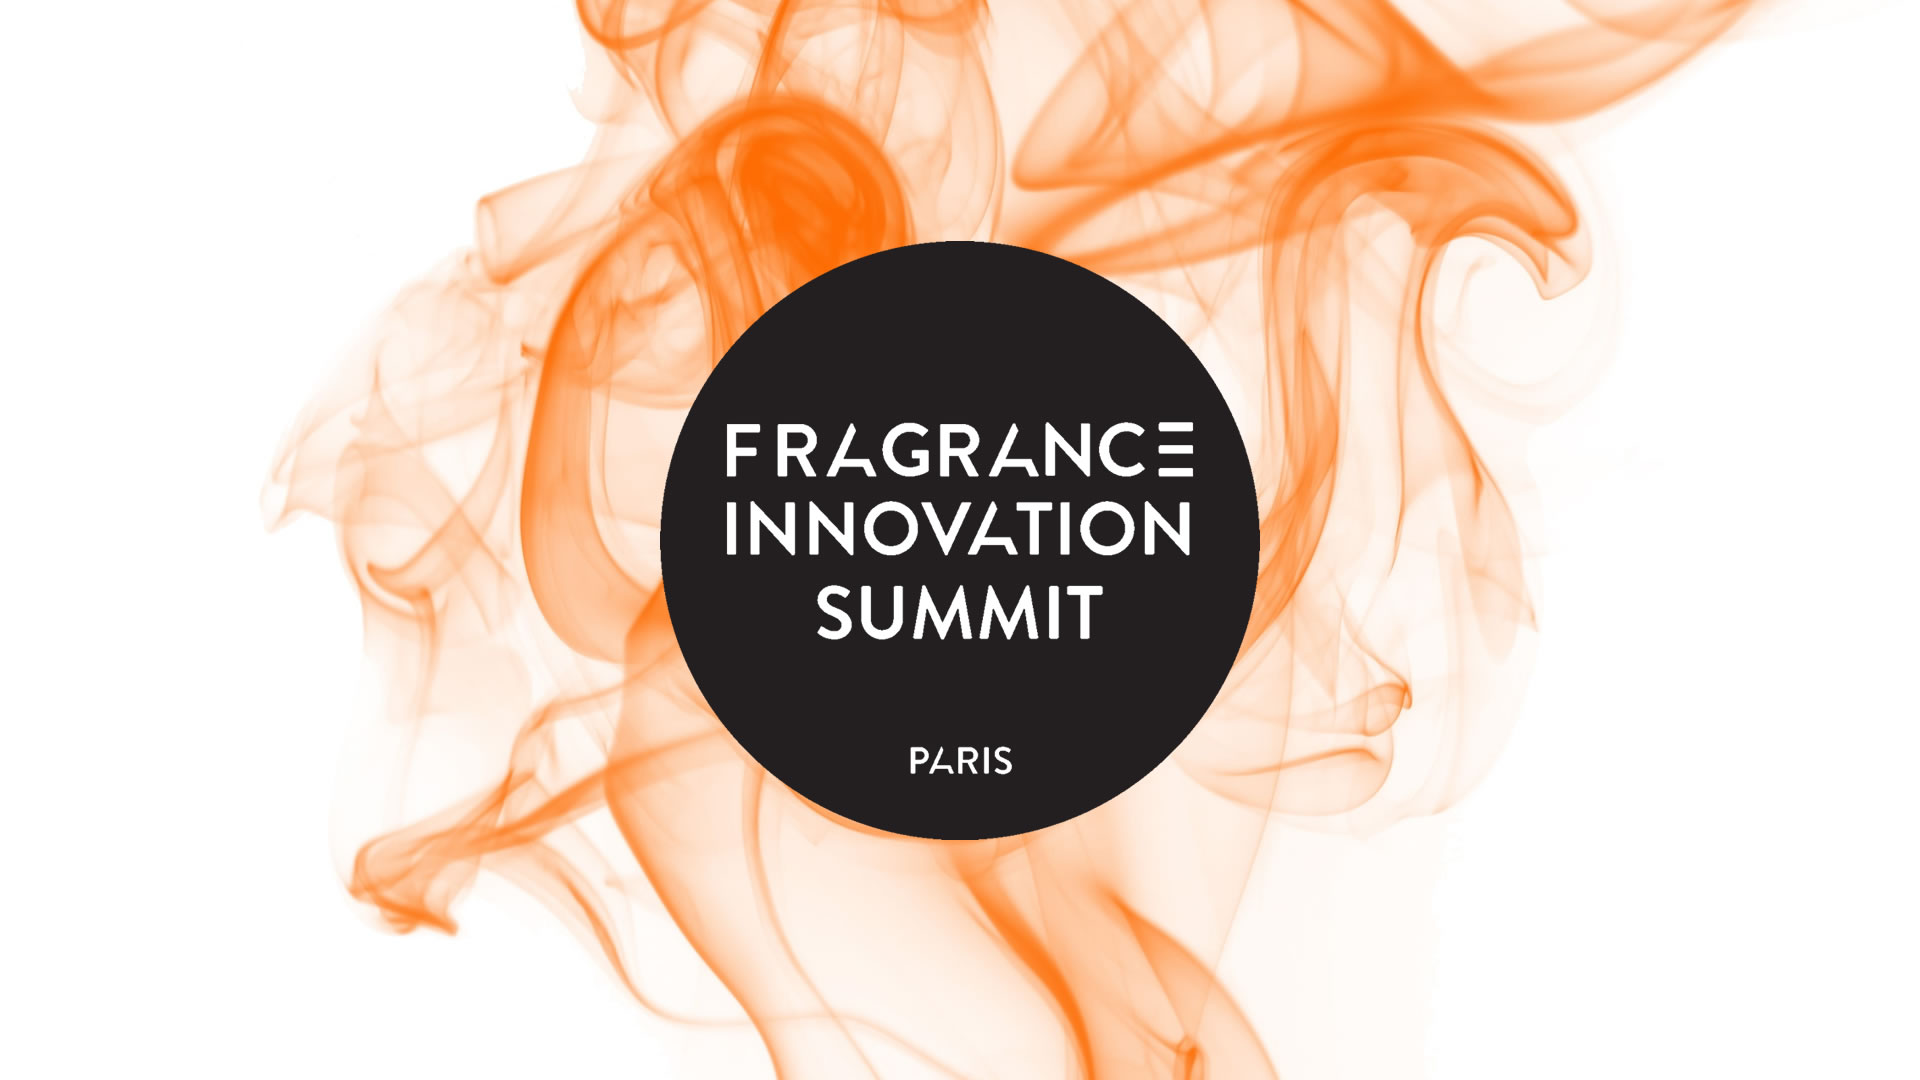 Fragrance Innovation Summit – November 7, 2019 | Paris